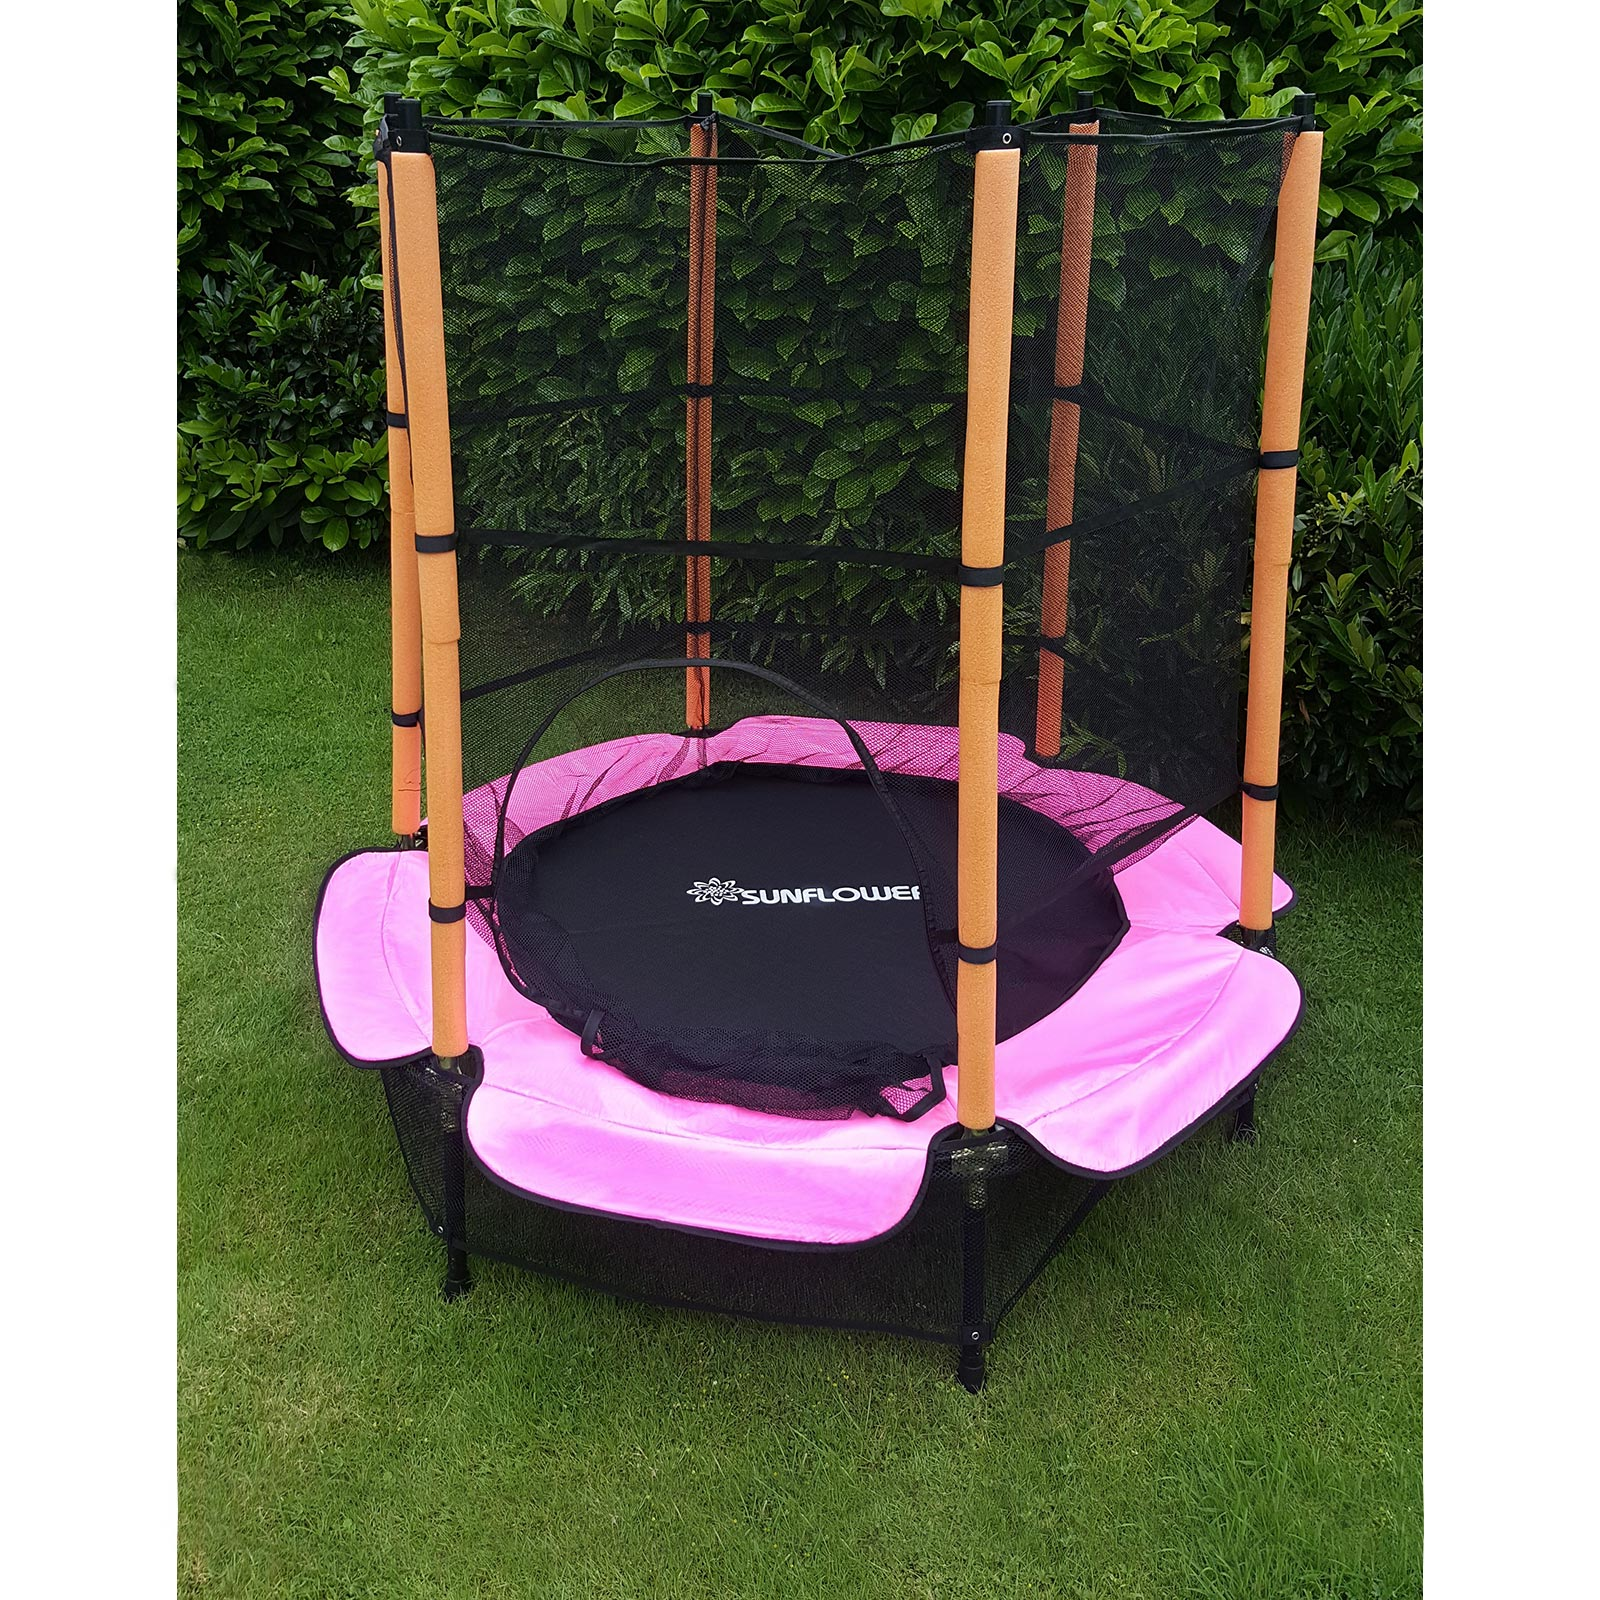 trampolin 140 cm komplett mit sicherheitsnetz pink ebay. Black Bedroom Furniture Sets. Home Design Ideas